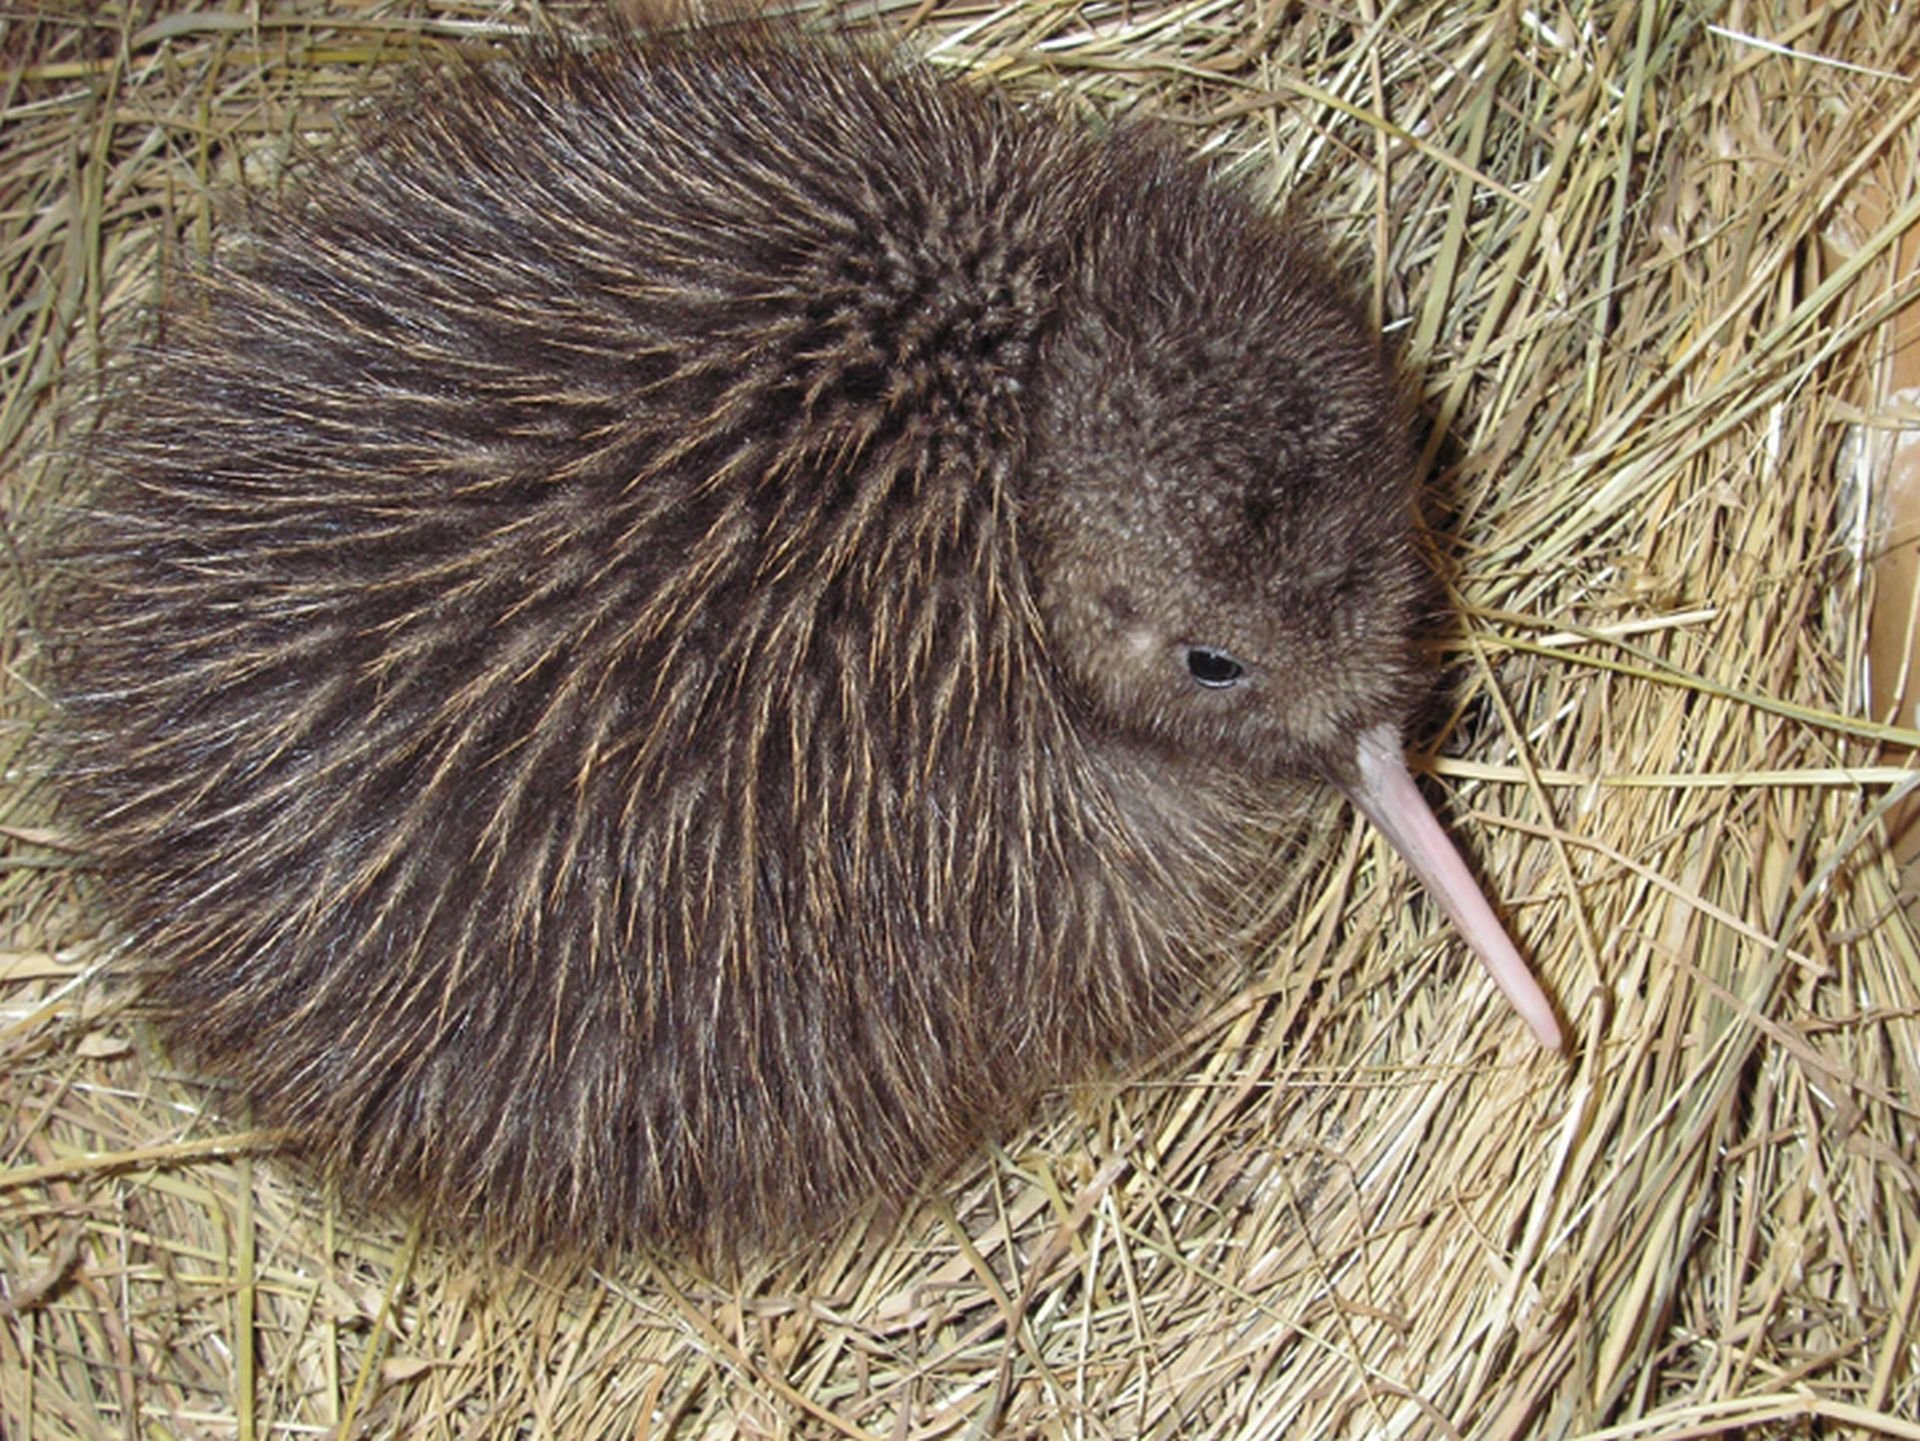 Okarito brown kiwi. Chick.  2020